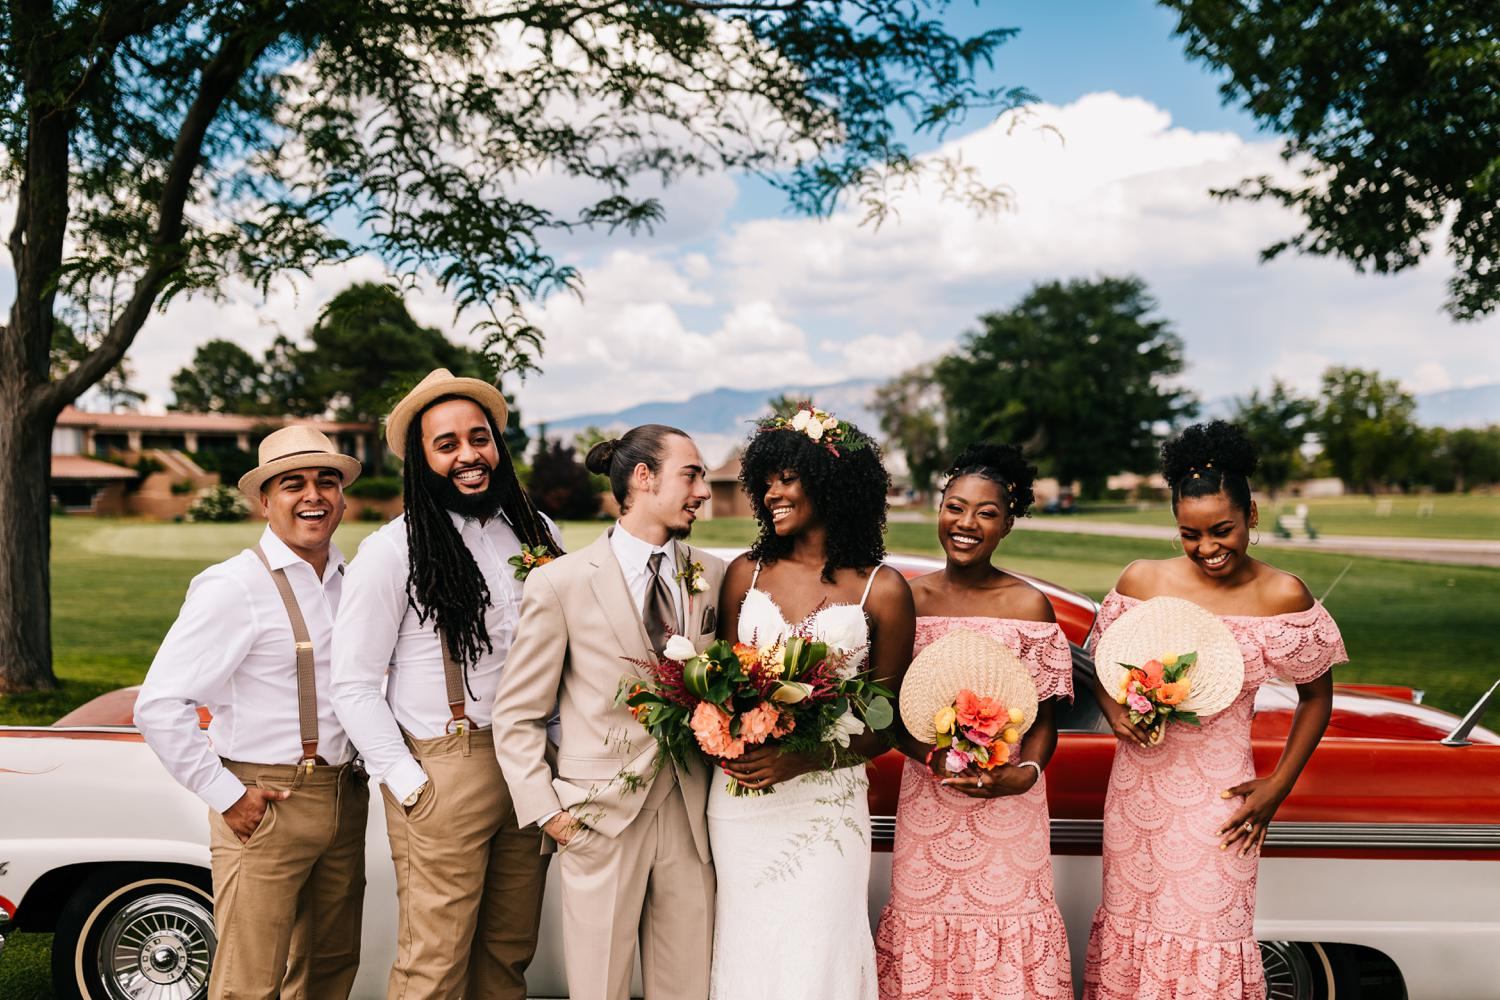 Colorful, laughing bridal party in front of Sandia Mountains, New Mexico